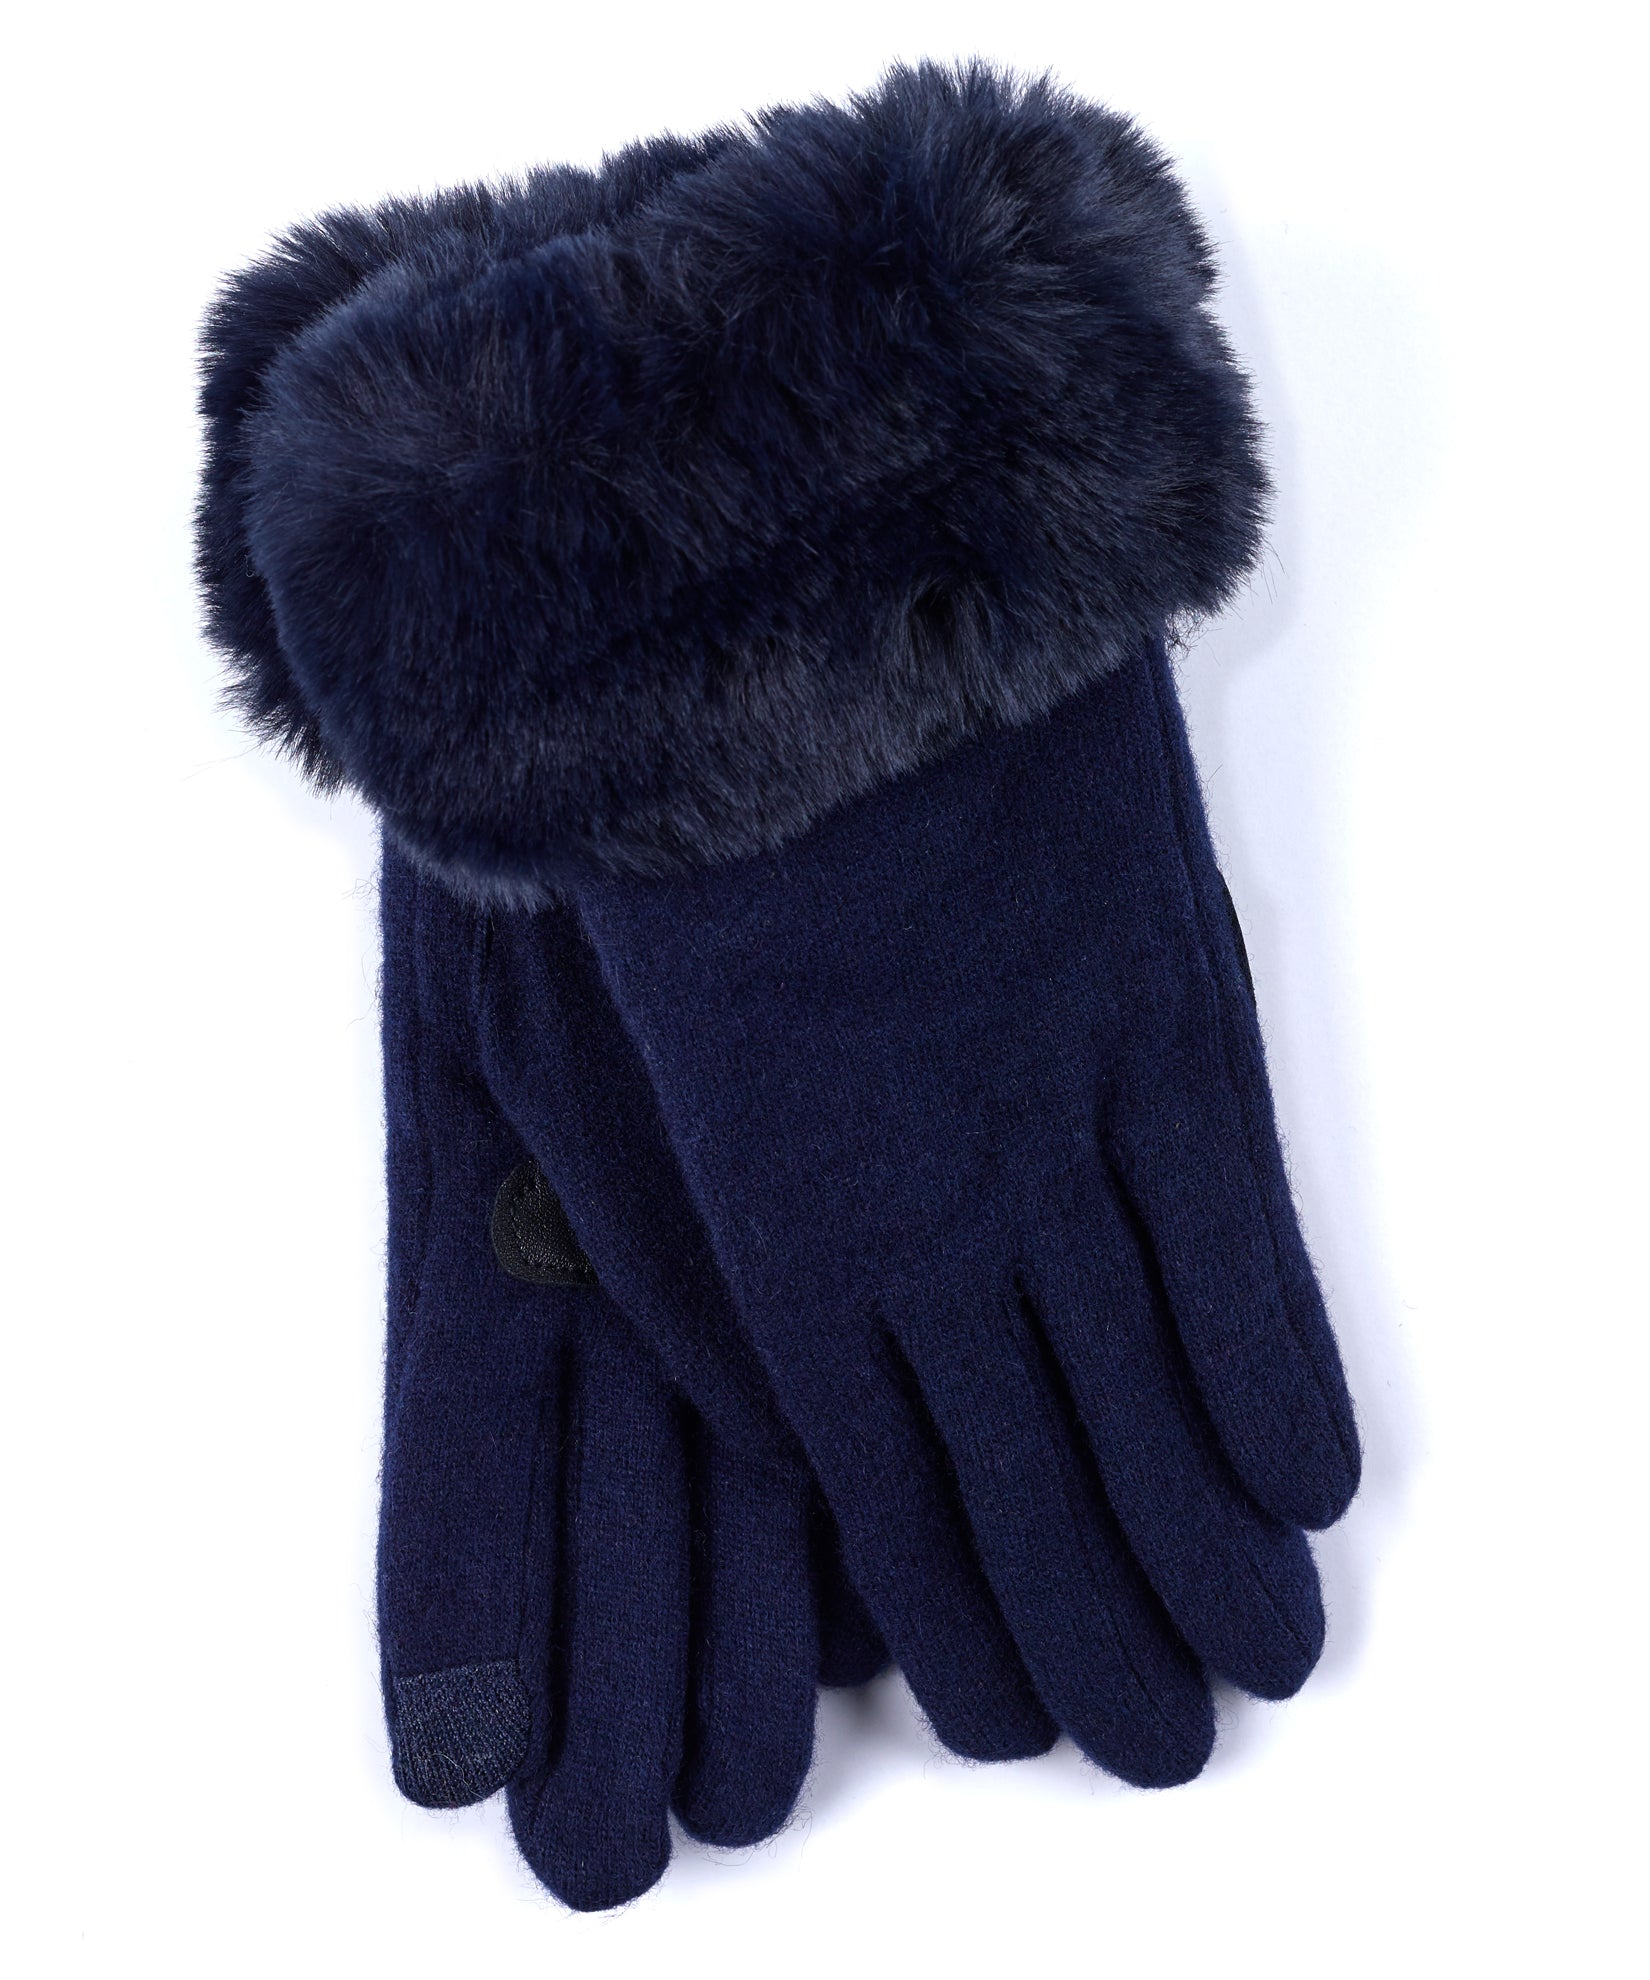 Echo Navy - Faux Fur Cuff Glove